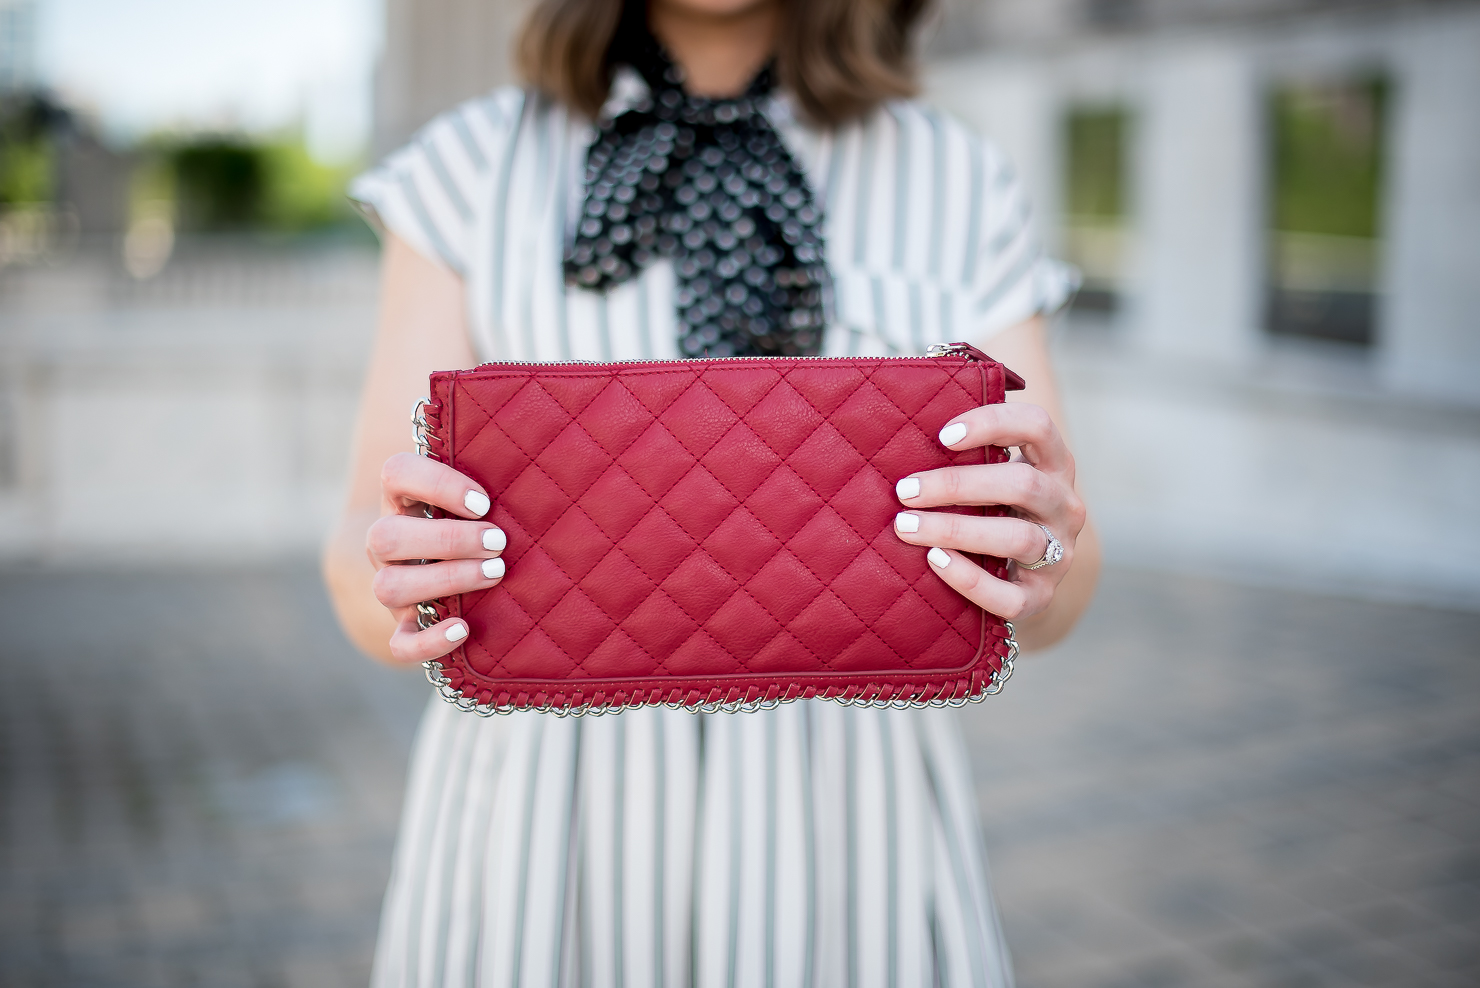 print-mixing-forever 21 red quilted clutch with chain detail